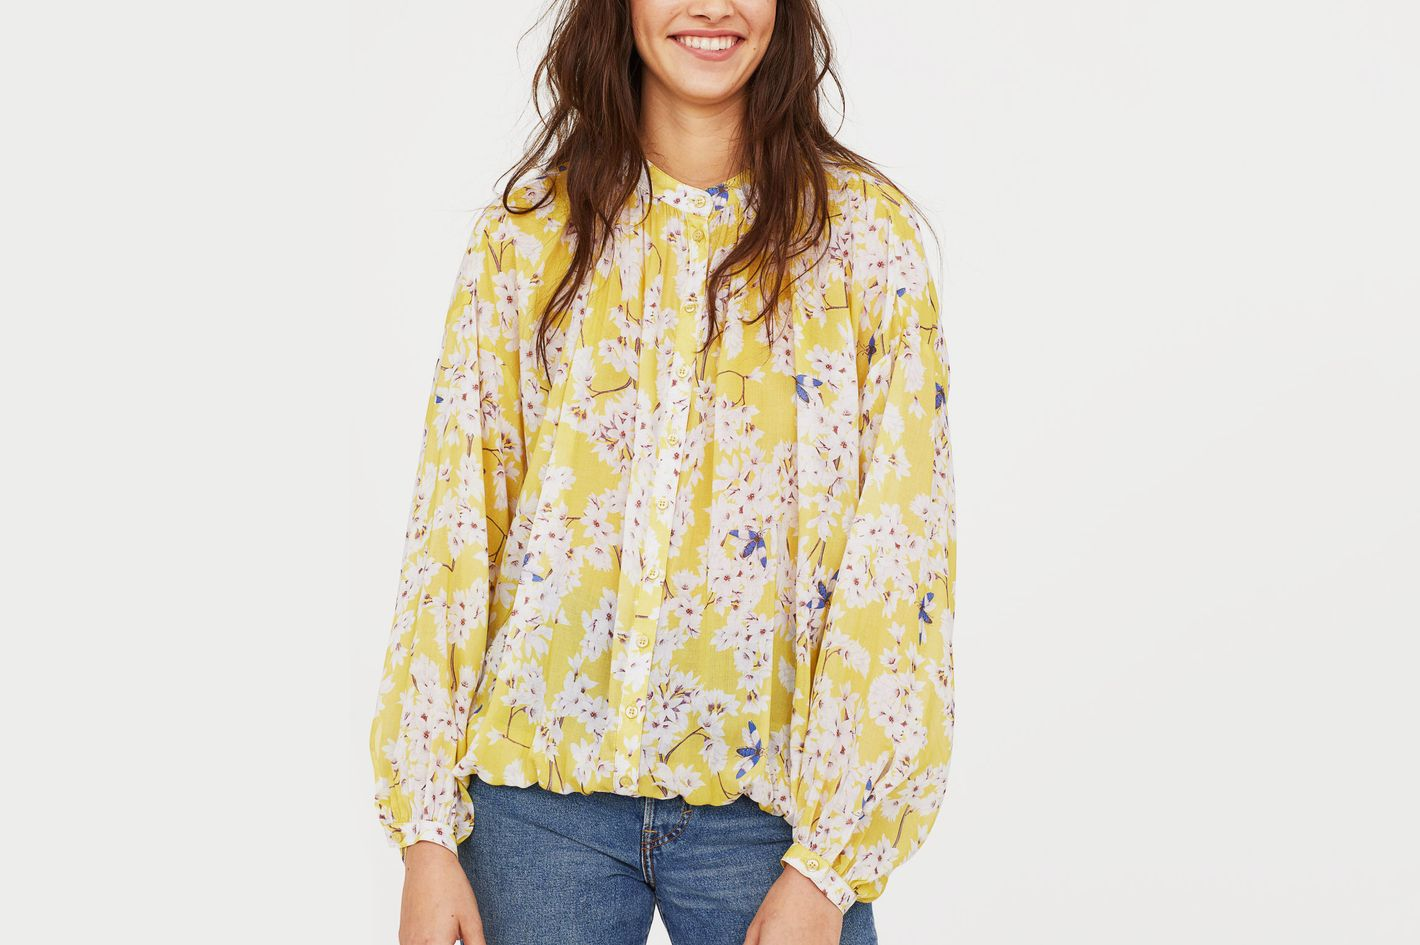 Anna Glover X H&M Patterned Lyocell Blouse